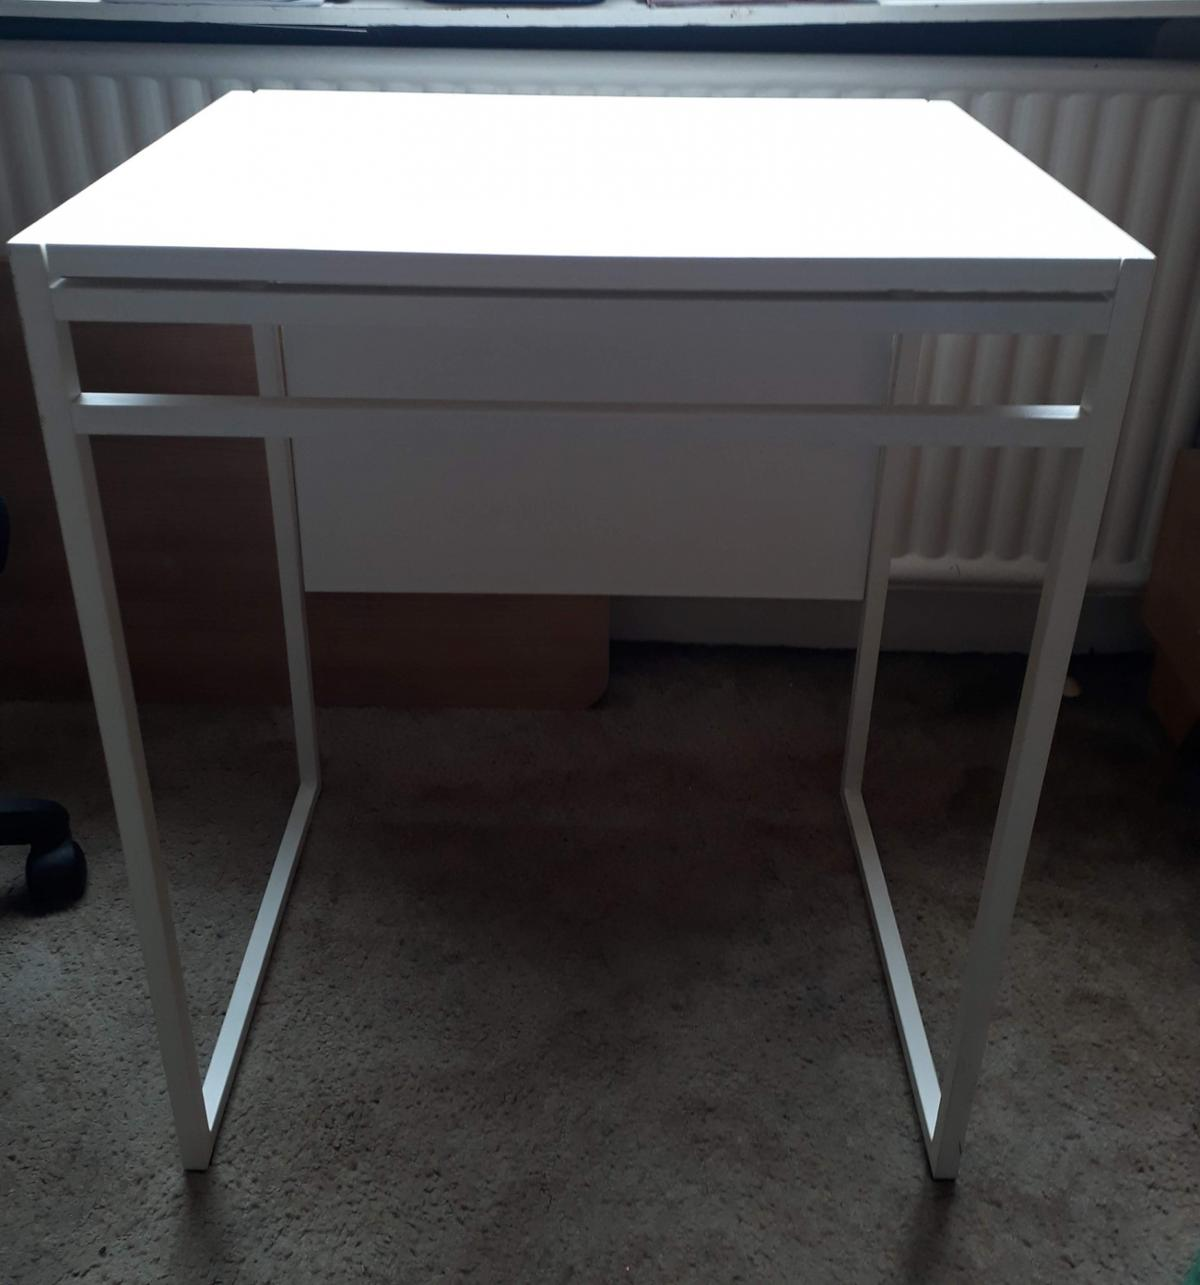 Ikea Muddus Drop Leaf Table Folding